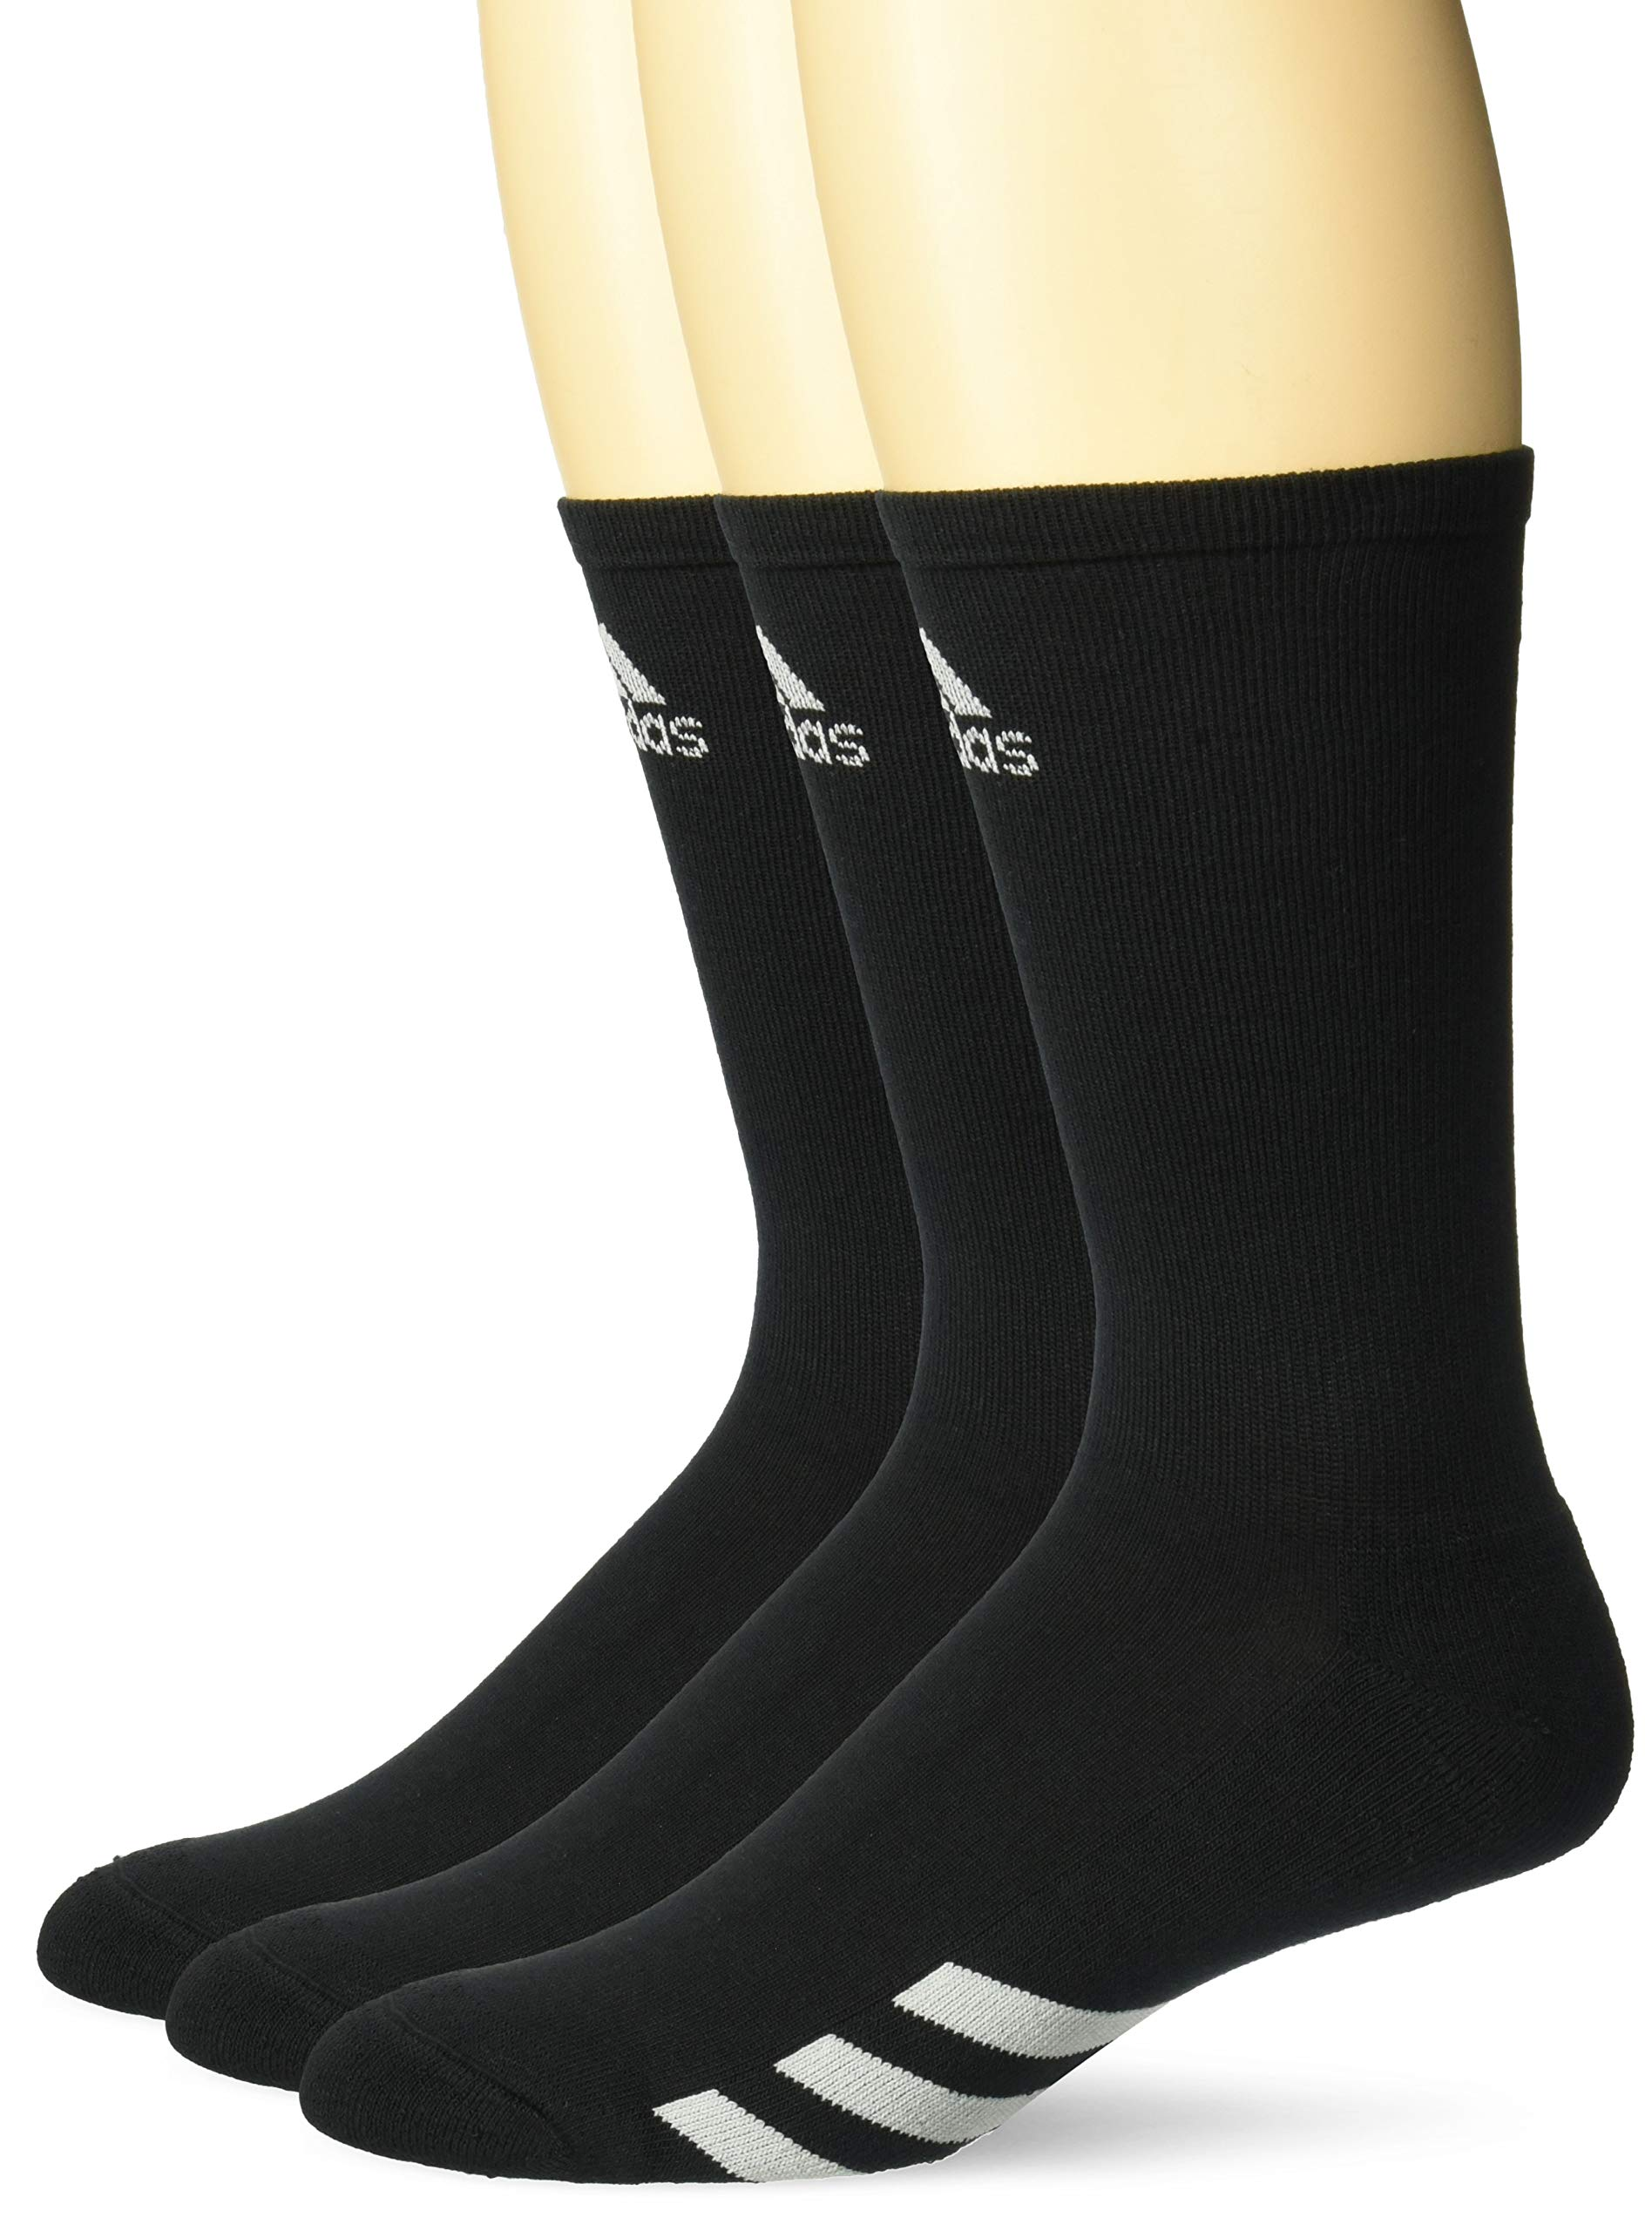 adidas Golf Men's 3-Pack Crew Sock, Black, 11-14 by adidas